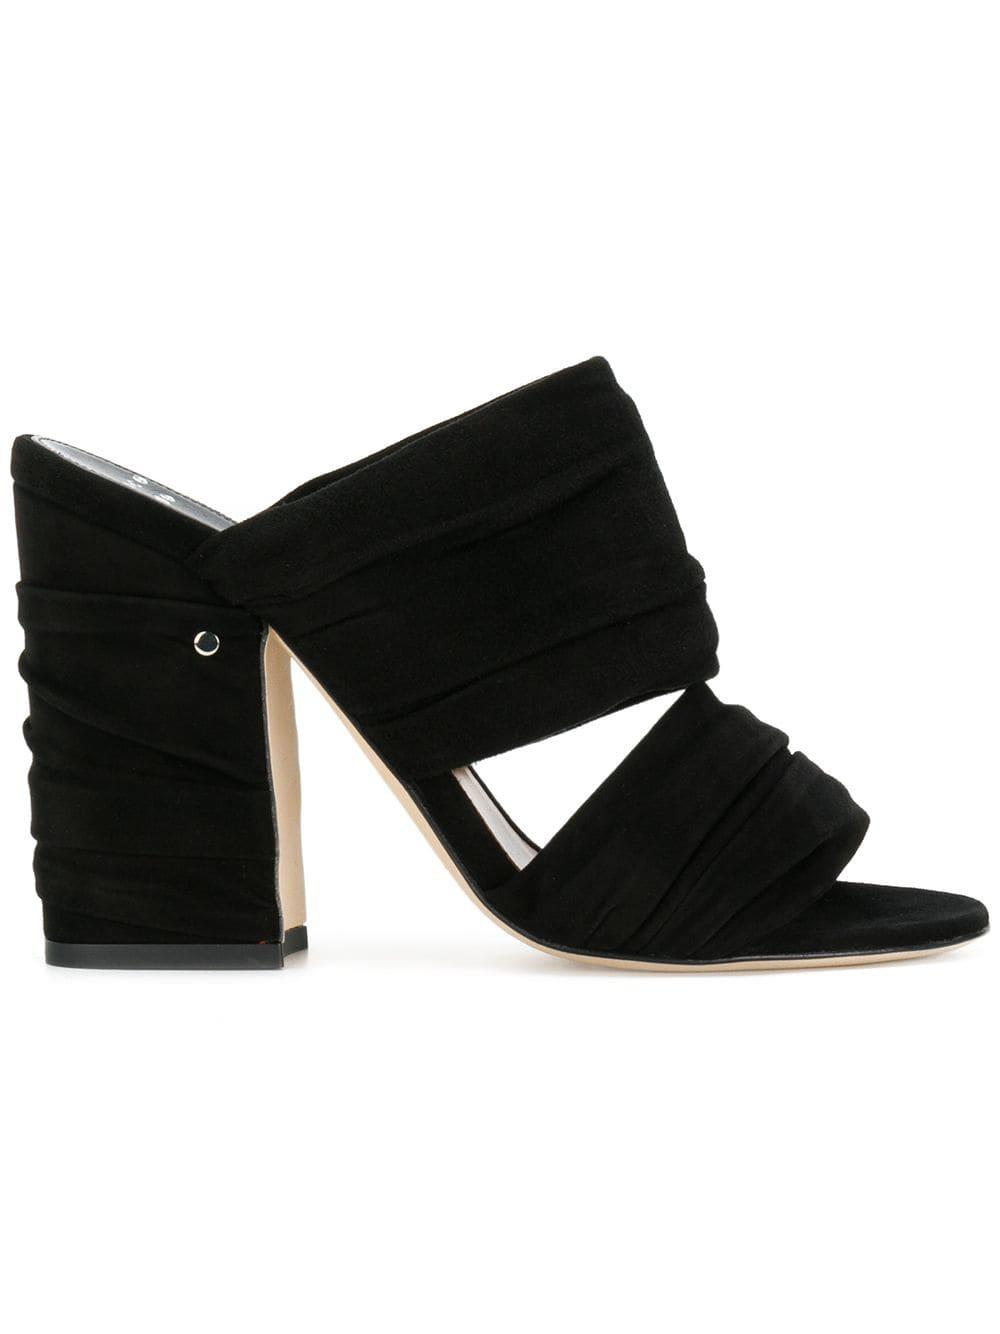 4a13cd1b50f Laurence Dacade Rona Mules in Black - Lyst